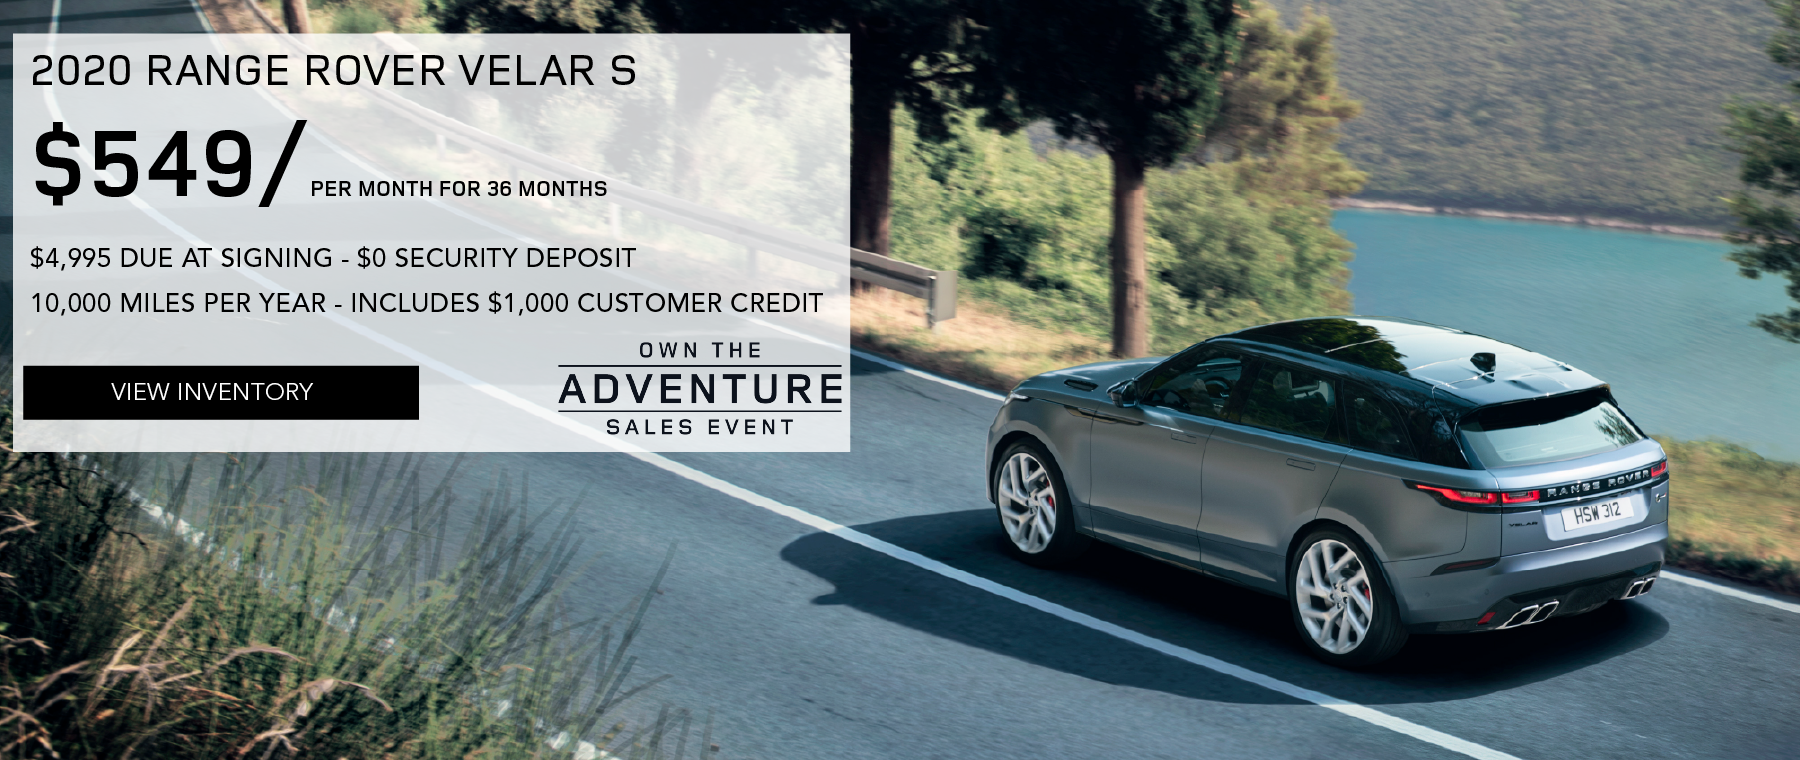 2020 RANGE ROVER VELAR S. $549 PER MONTH. 36 MONTH LEASE TERM. $4,495 CASH DUE AT SIGNING. INCLUDES $1,000 CUSTOMER CREDIT. $0 SECURITY DEPOSIT. 10,000 MILES PER YEAR. OFFER ENDS 3/2/2020. OWN THE ADVENTURE SALES EVENT. BLUE RANGE ROVER VELAR DRIVING DOWN ROAD NEAR LAKE.